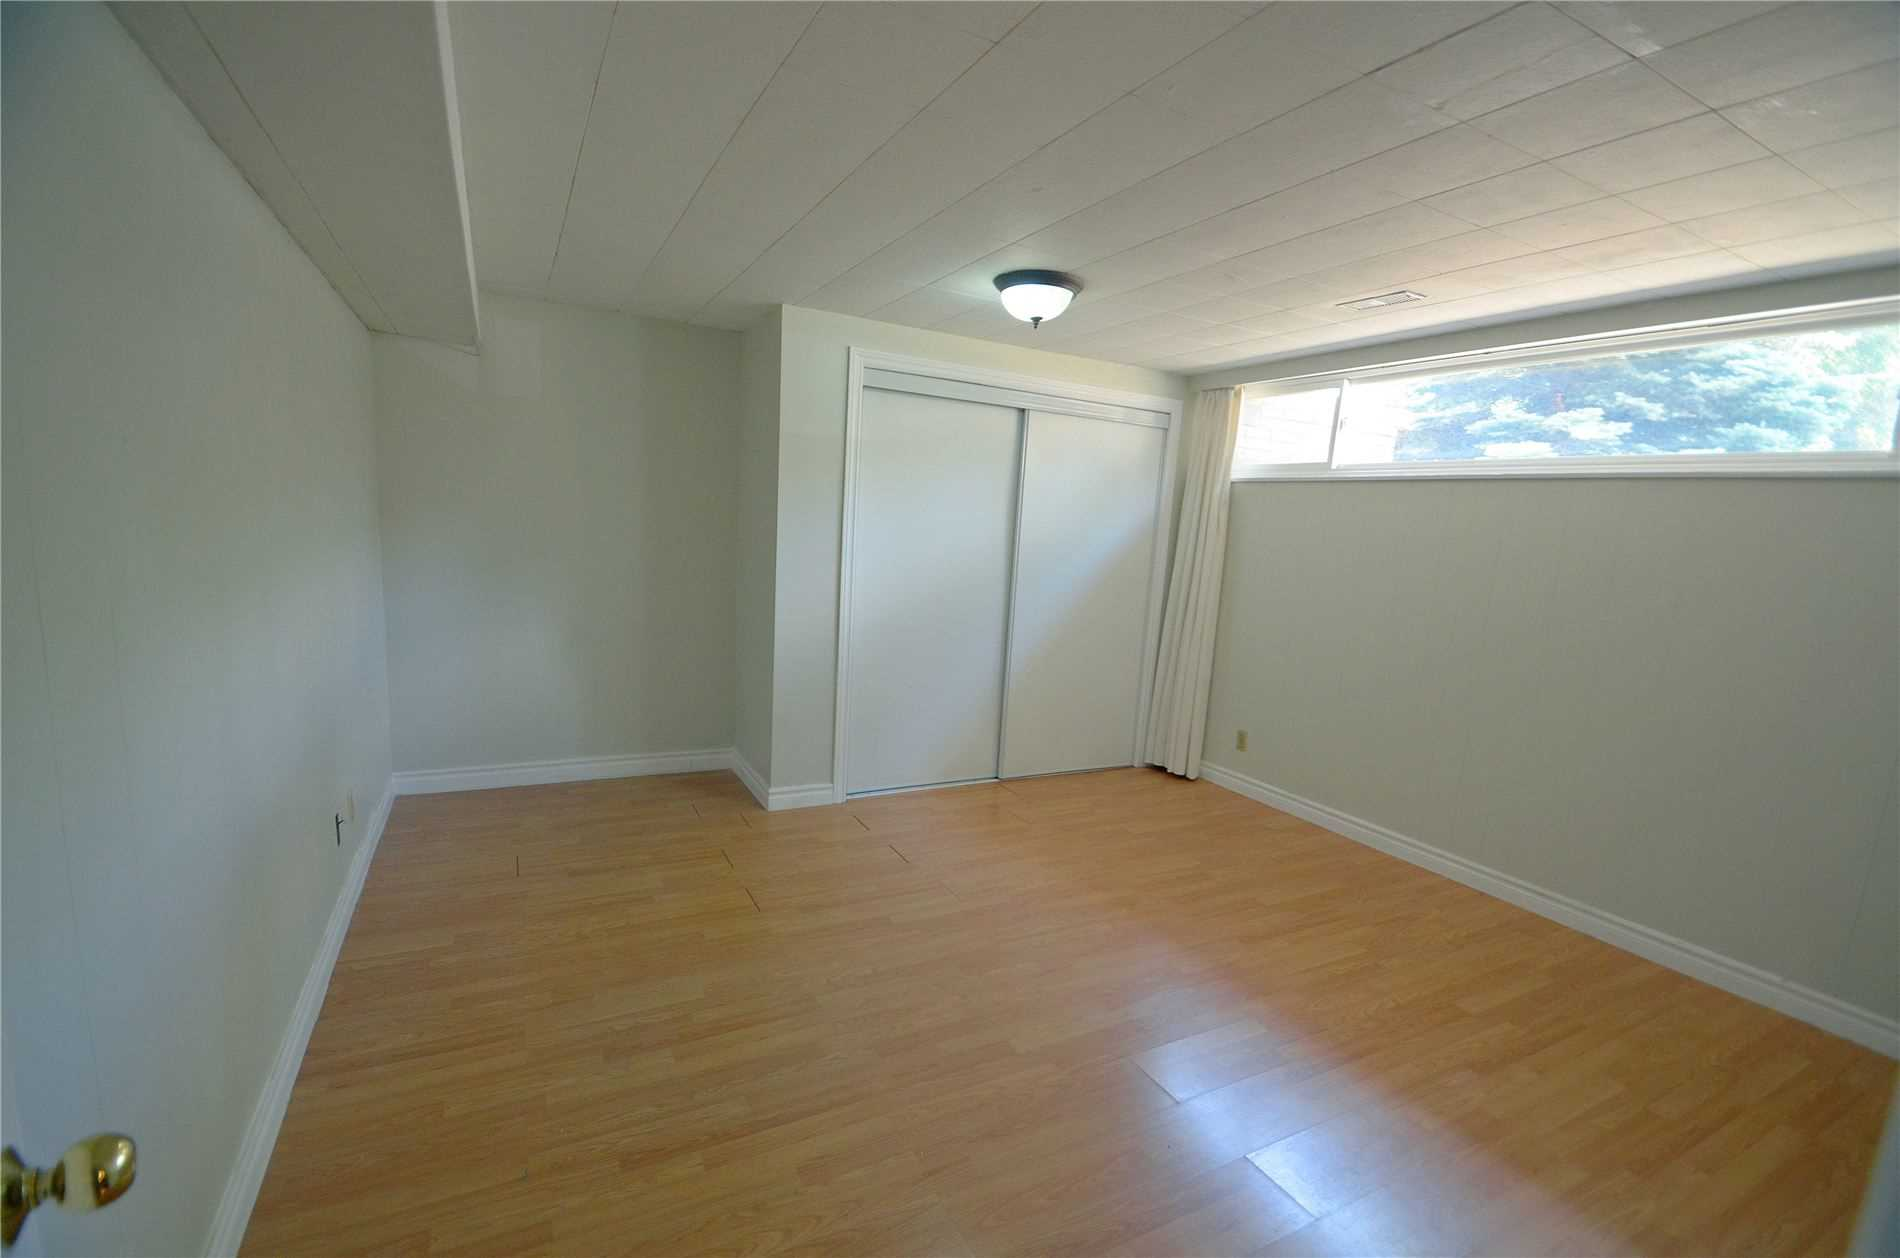 Image 6 of 9 showing inside of 3 Bedroom Detached Bungalow for Lease at 6 Mullet Rd, Toronto M2M2A6